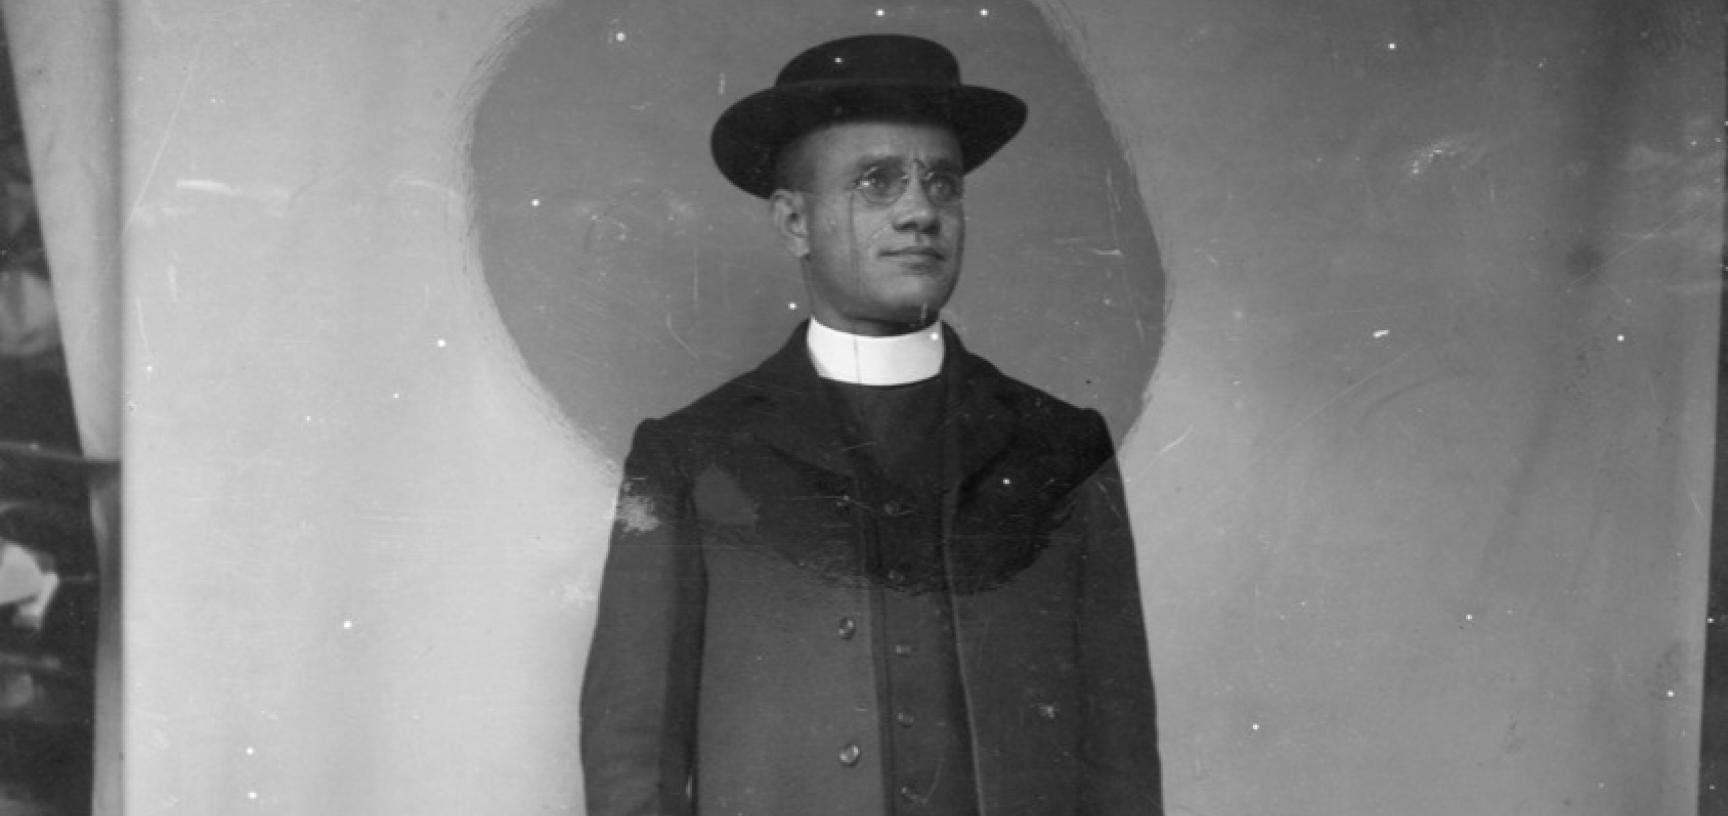 Portrait of Harley, one of several in his personal archive, here pictured dressed as a curate. Photographer unknown. Circa 1911. (Courtesy Michael Wortley)